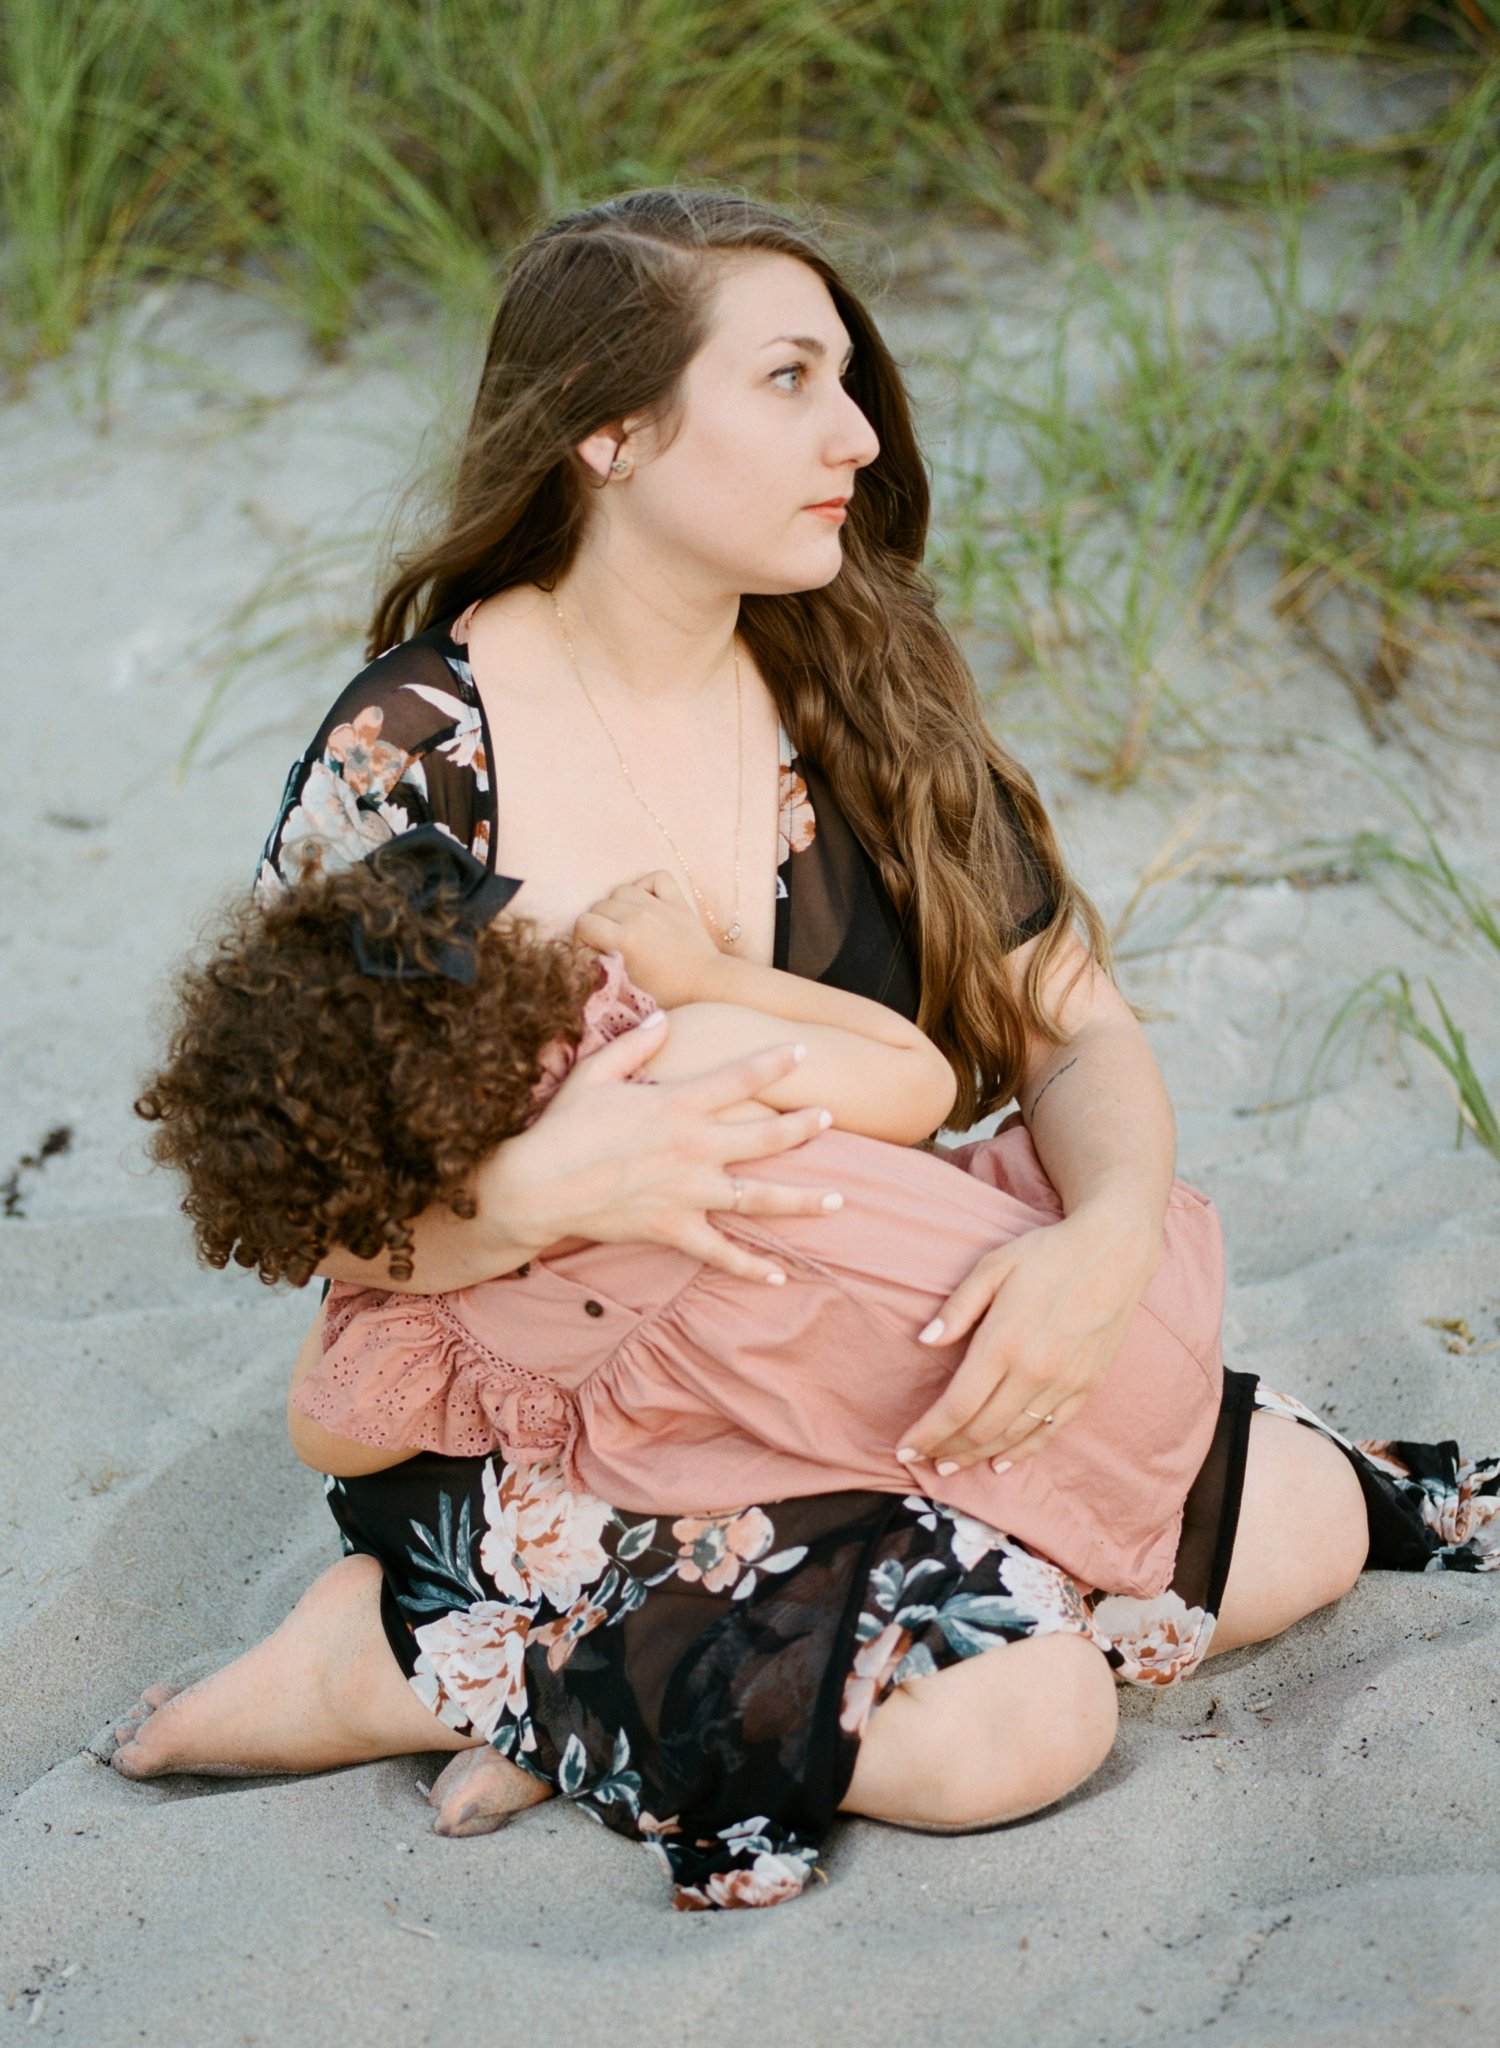 west palm beach breastfeeding session west palm beach breastfeeding photographer shannon griffin photography_0035.jpg